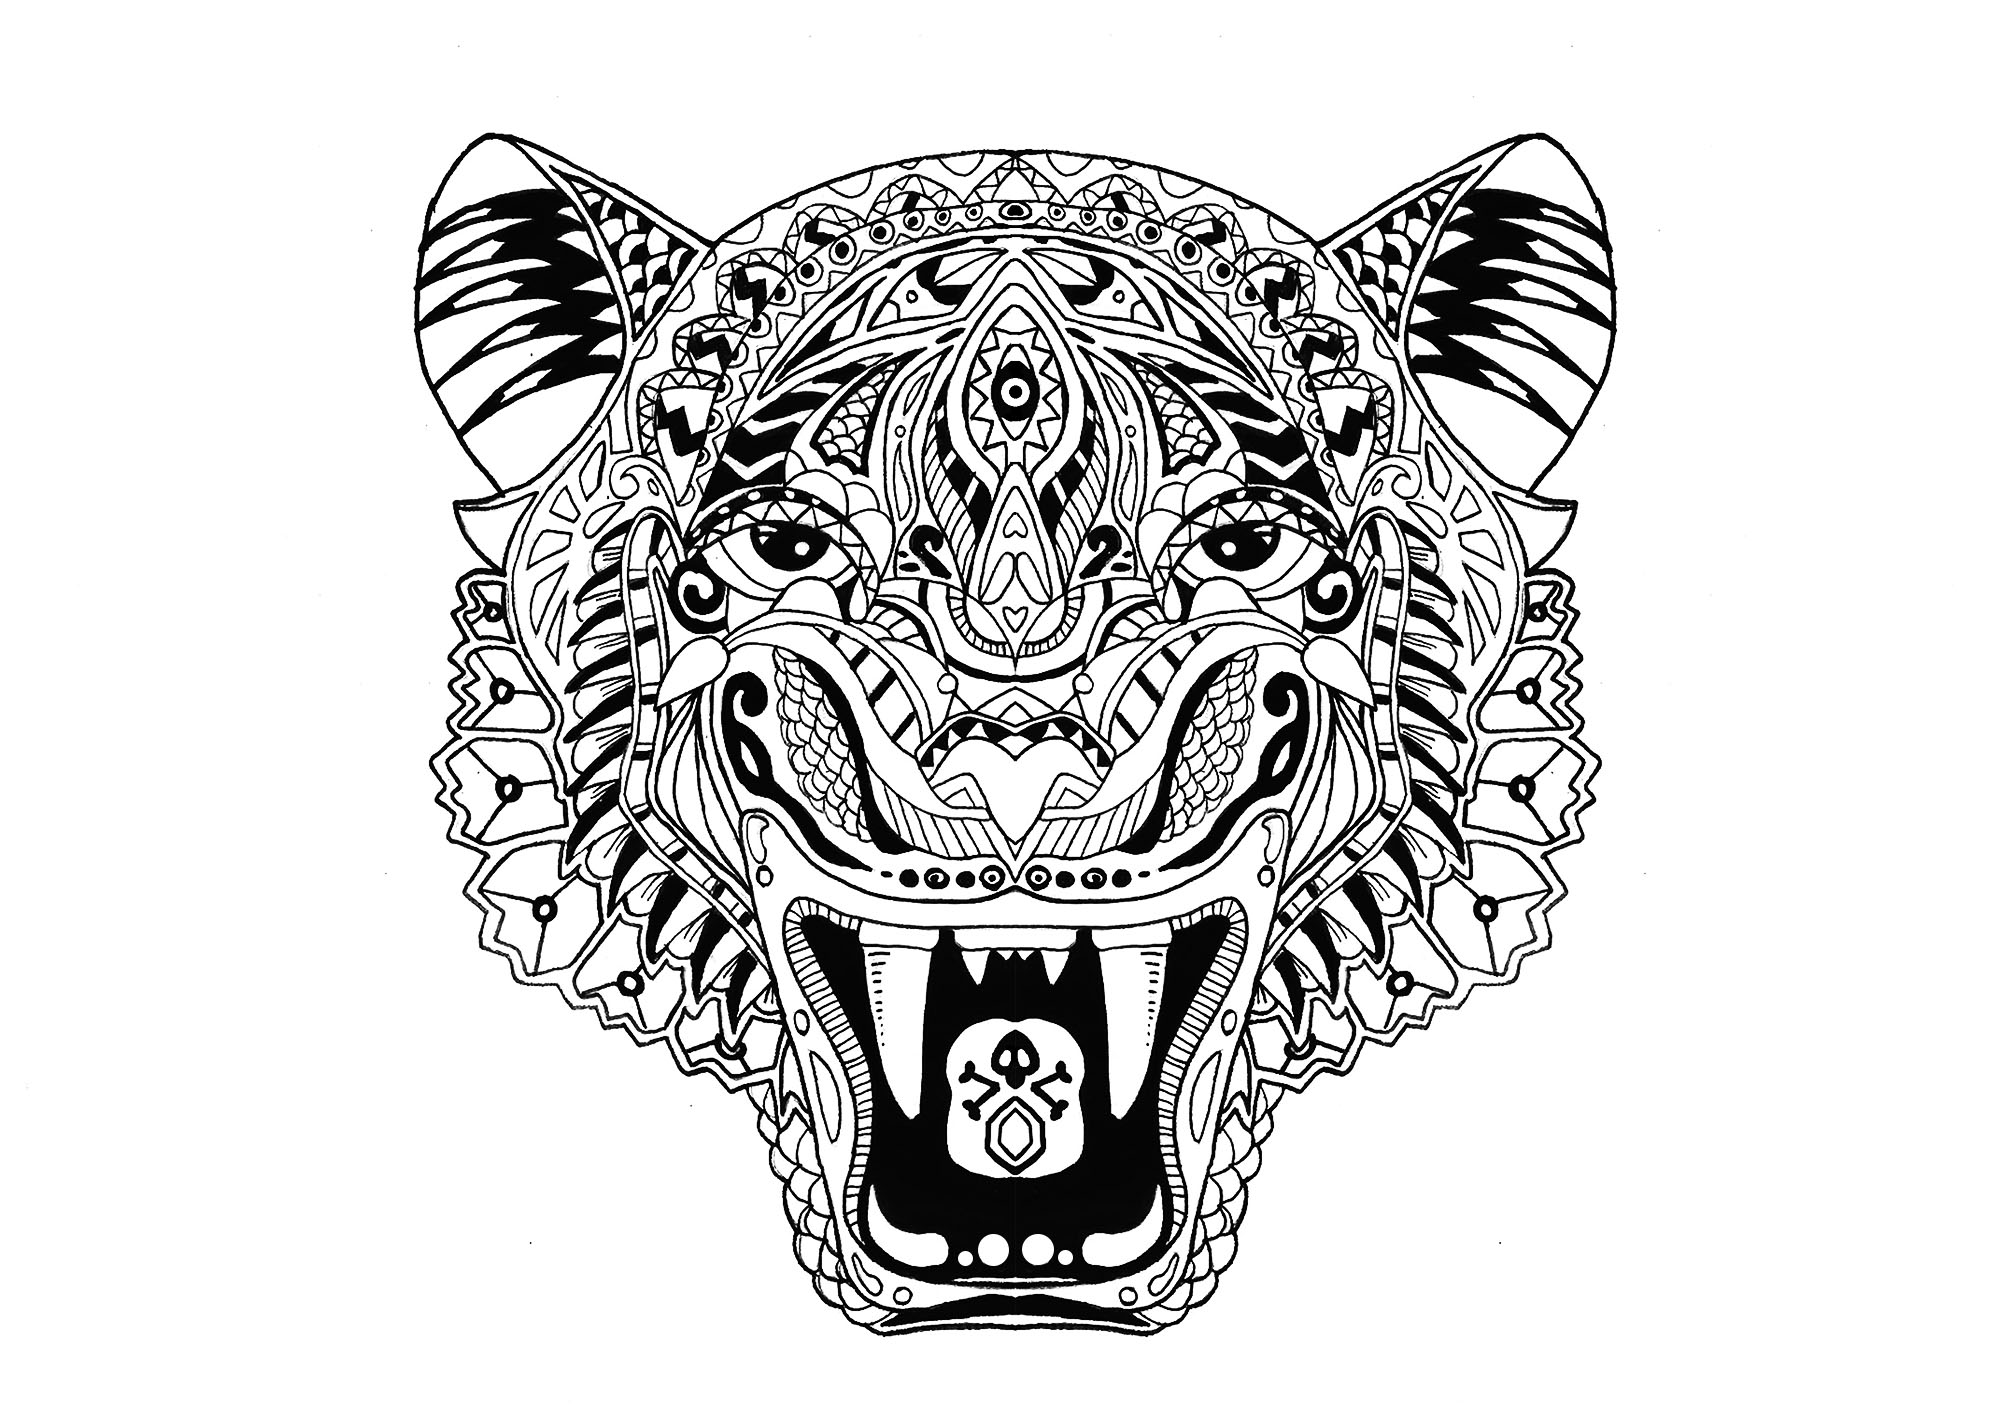 coloring page of tiger free tiger coloring pages coloring page of tiger 1 1